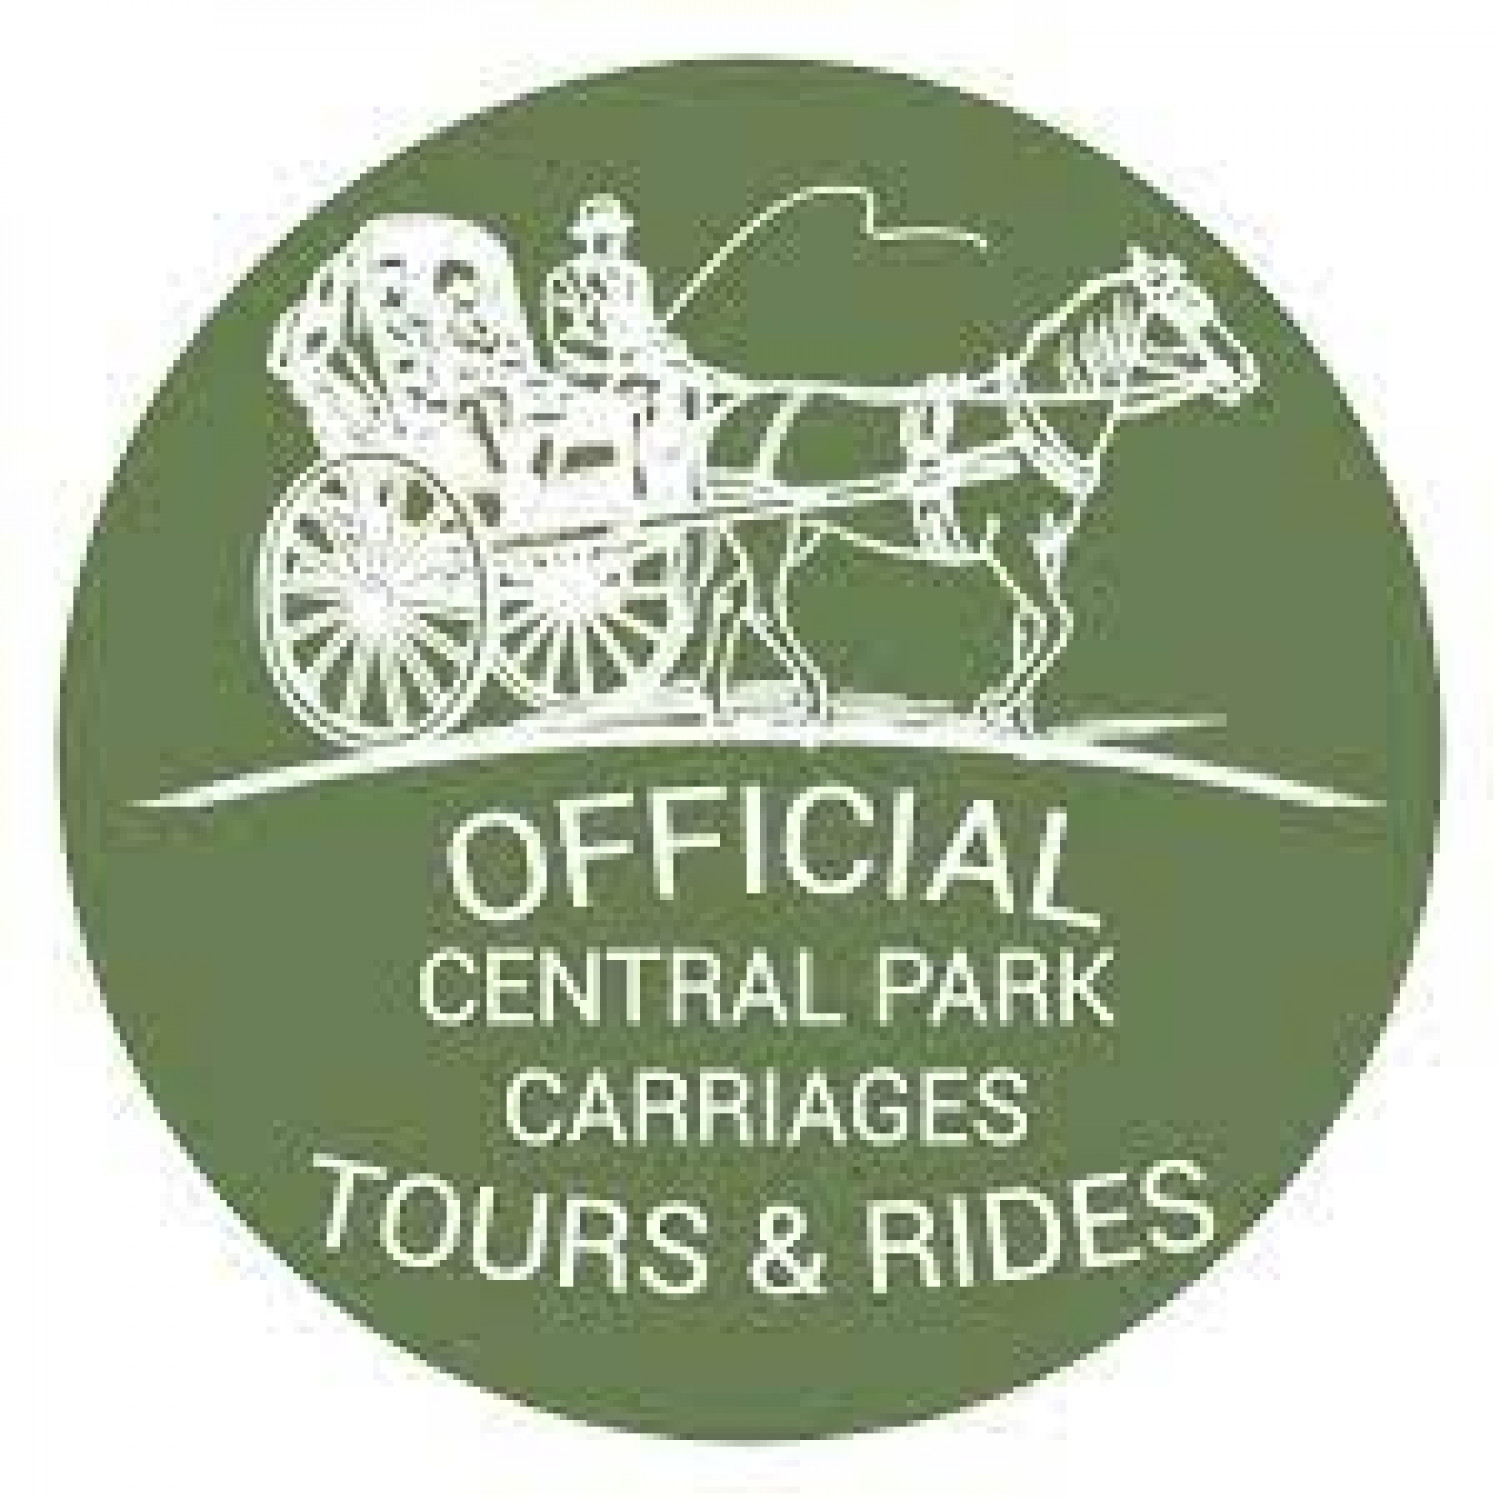 Central Park Carriages Infographic